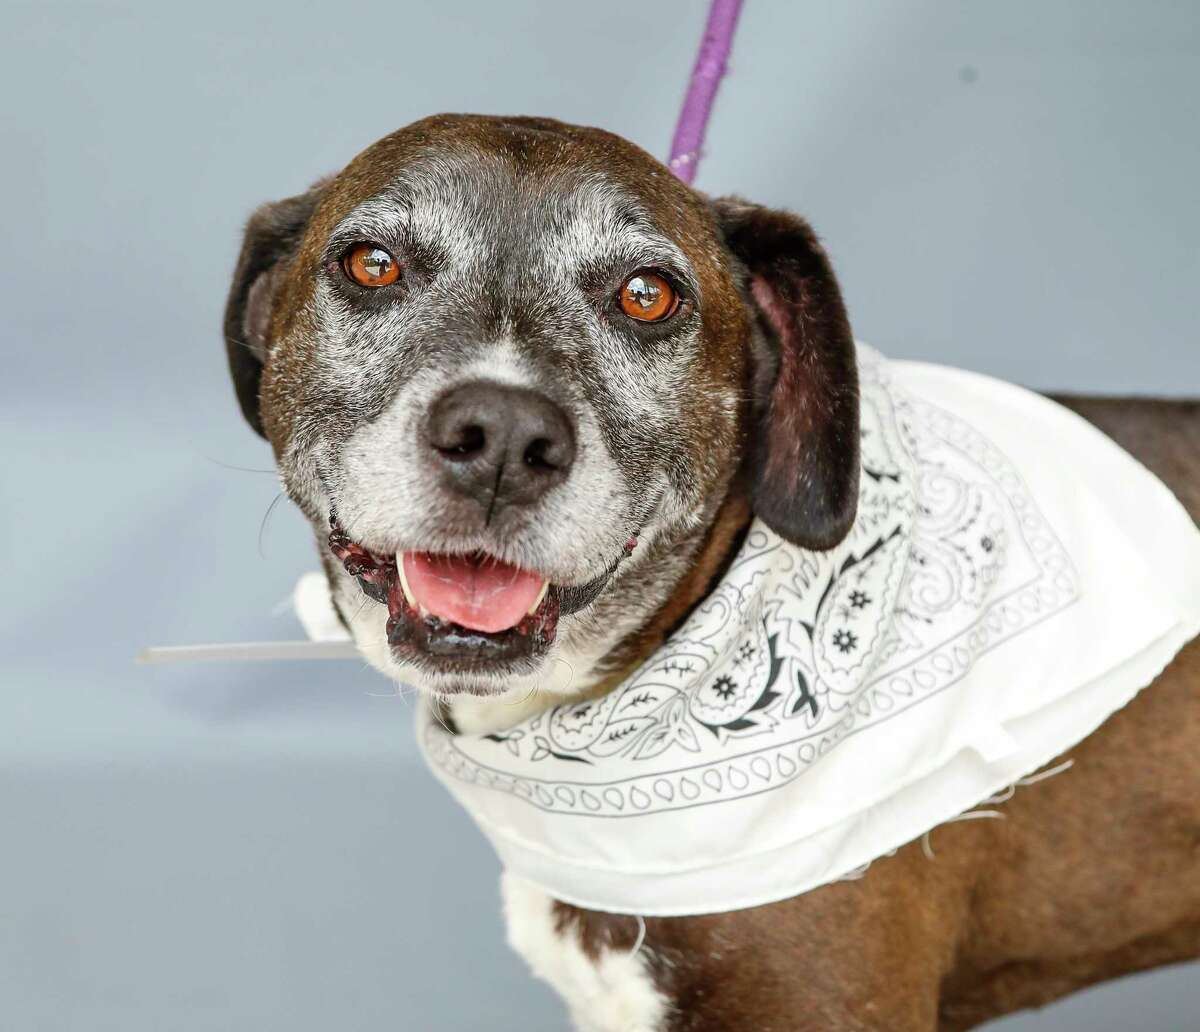 Champ (A1313223) is a 6-year old, male Lab/American Staffordshire mix available for adoption at BARC Animal Shelter, Thursday, May 27, 2021, in Houston. Champ is a sweet boy who loves to go on walks and is a pro at walking on his leash. He did well when meeting other dogs in the shelter. PURRFURRED pet, so his adoption fee has been waived.